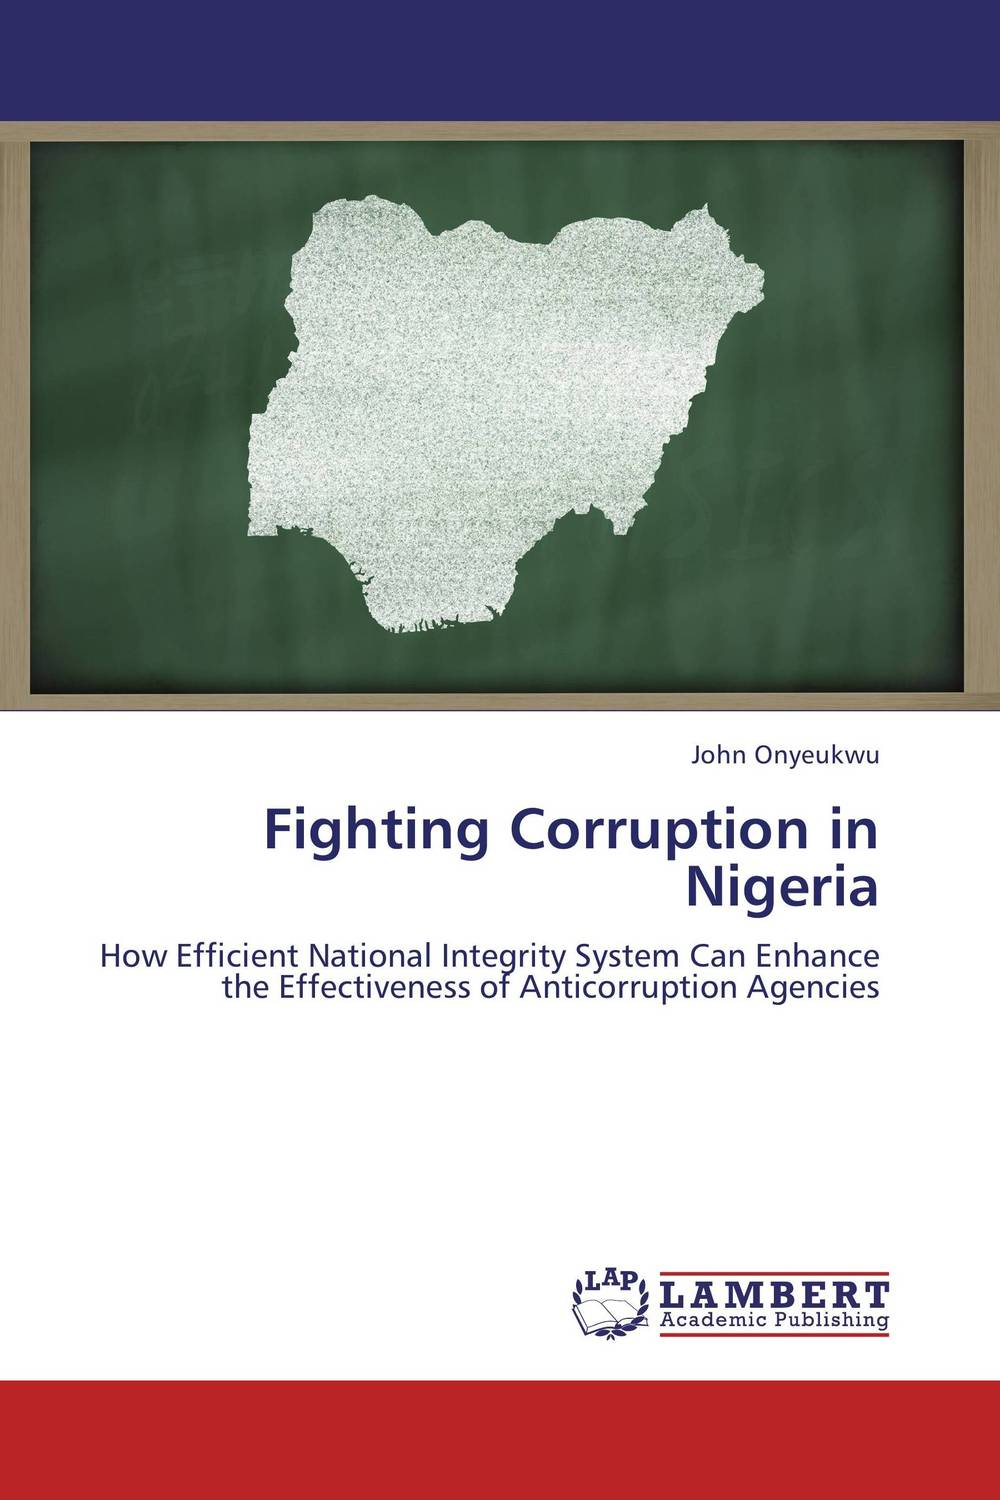 купить Fighting Corruption in Nigeria недорого